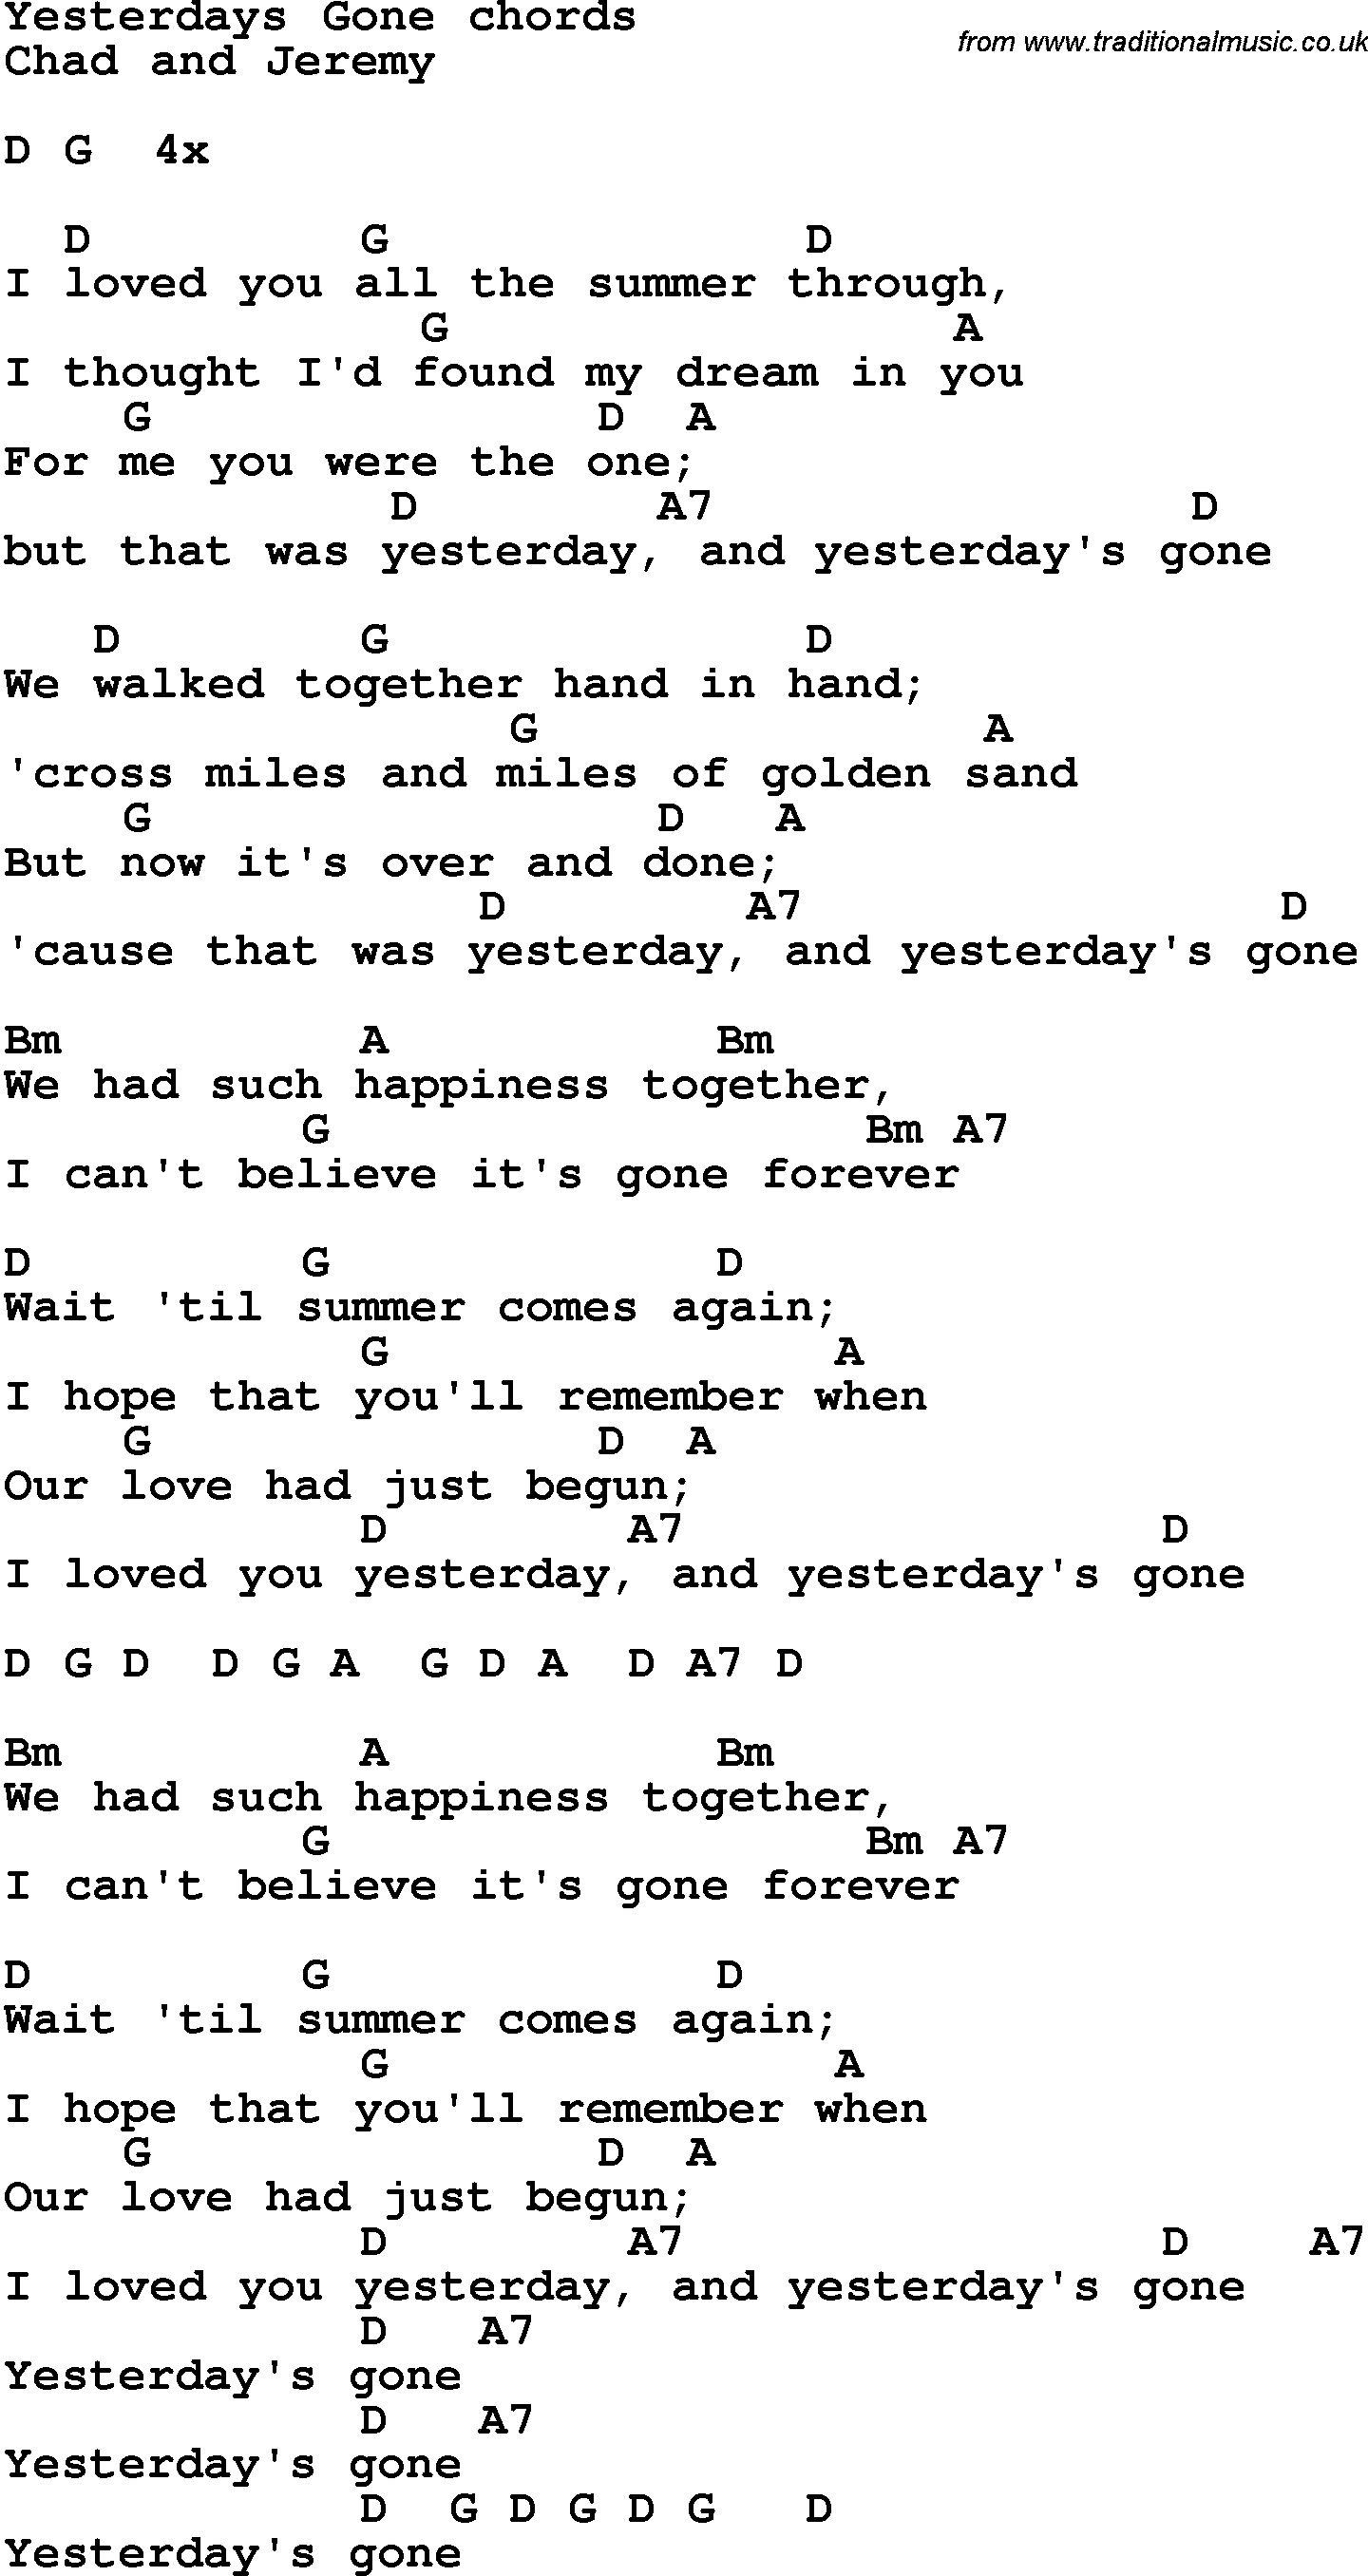 Song Lyrics With Guitar Chords For Yesterdays Gone